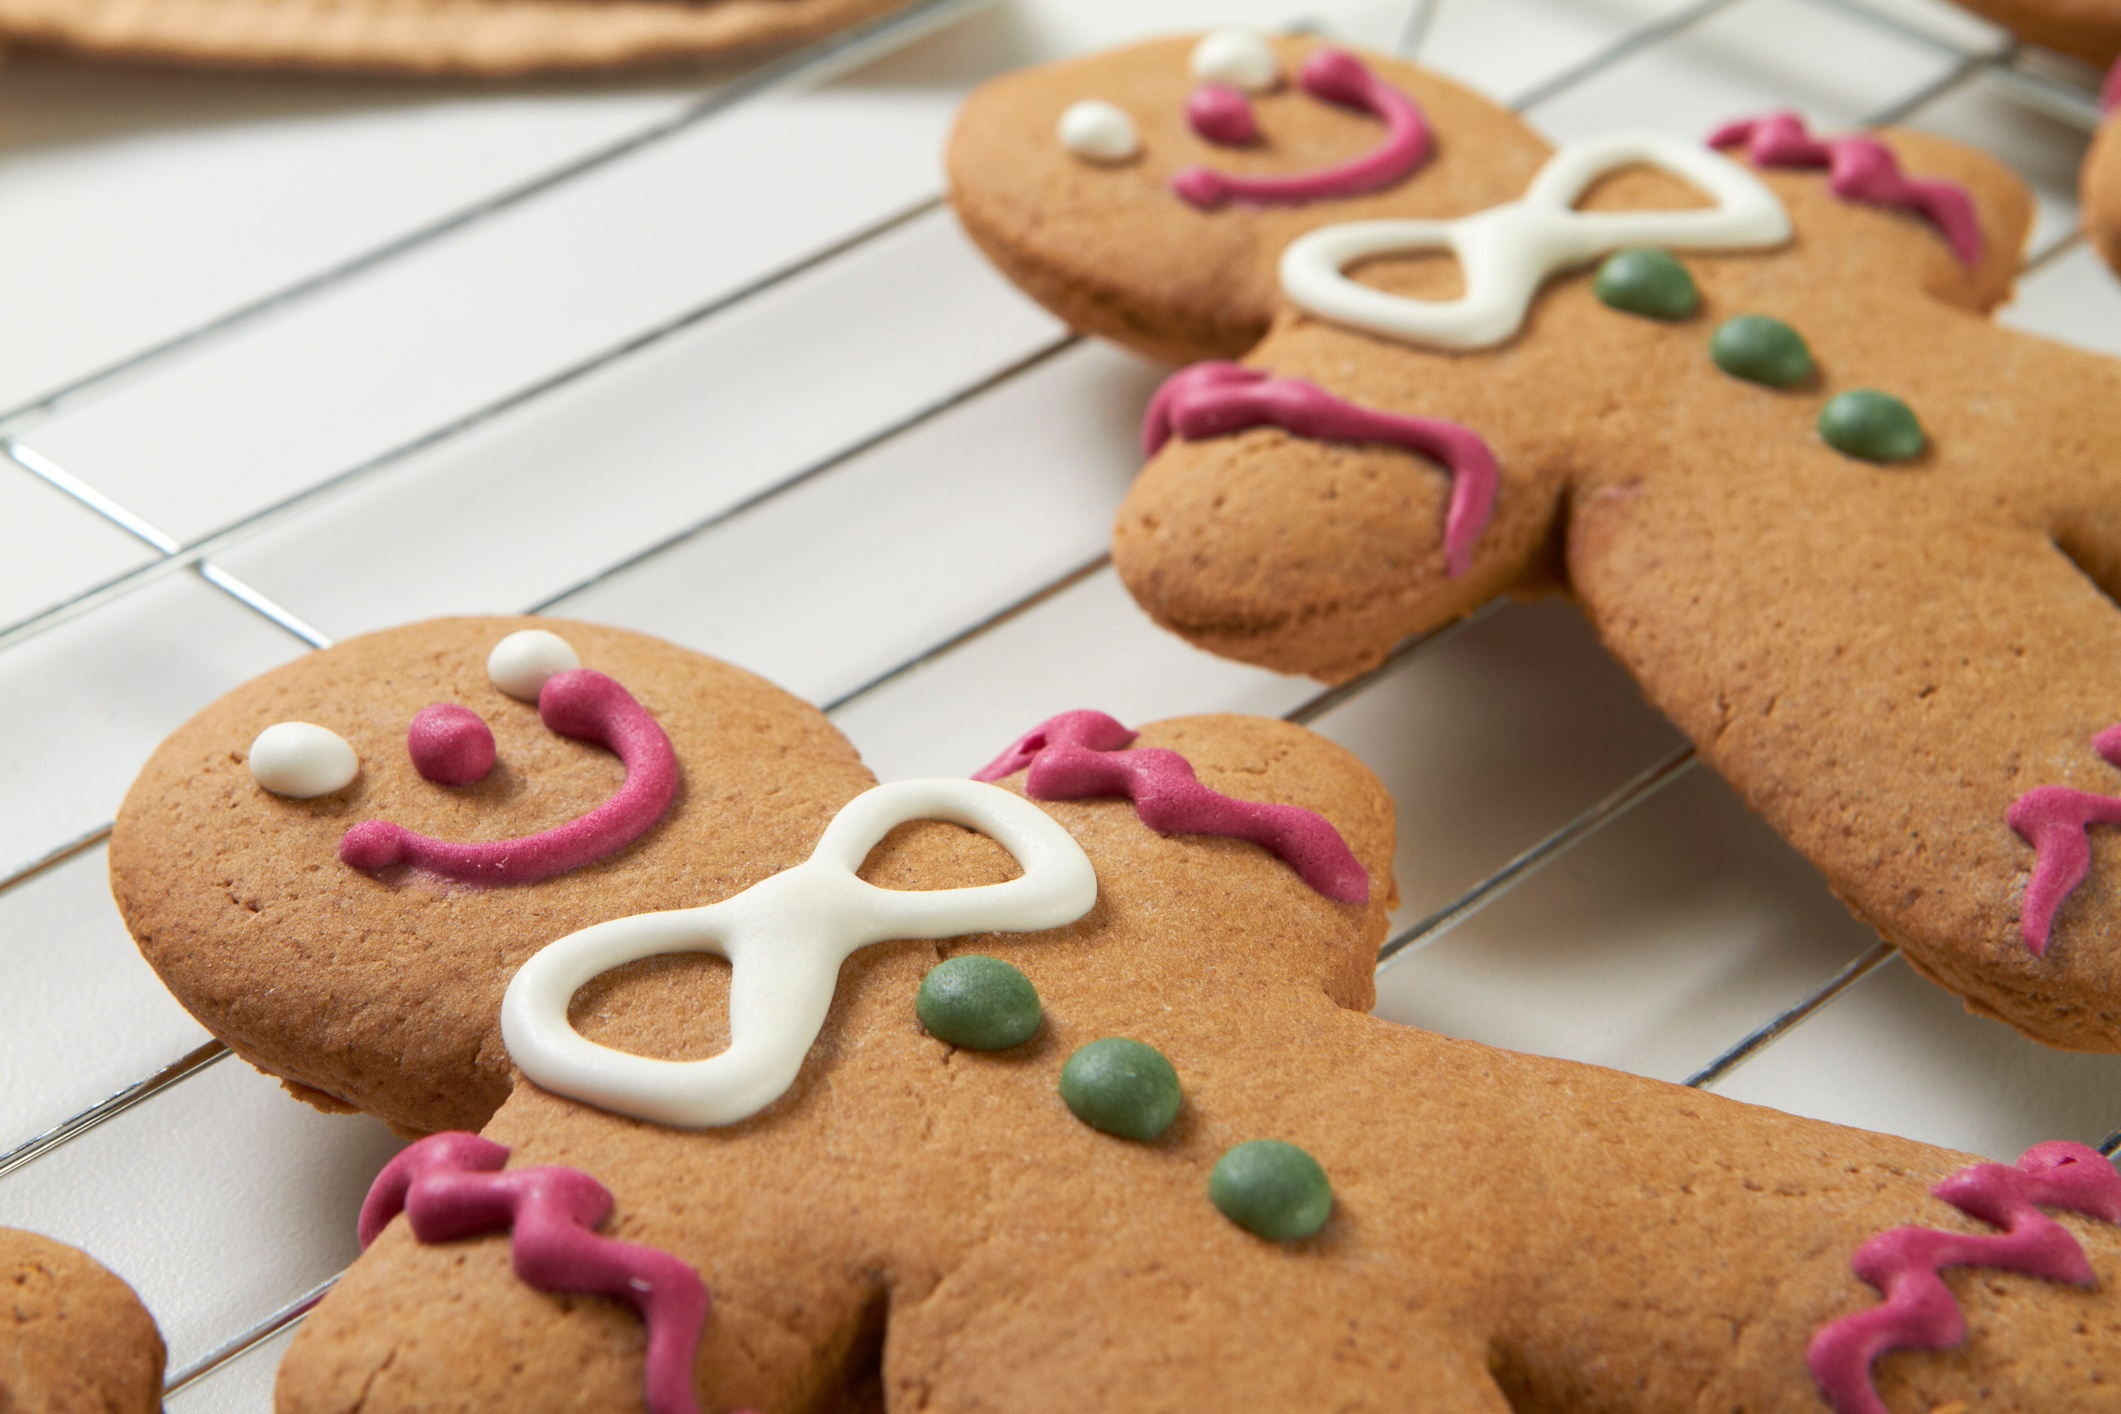 Gingerbread-cookie-on-a-cooling-rack-182424978_2125x1416.jpeg